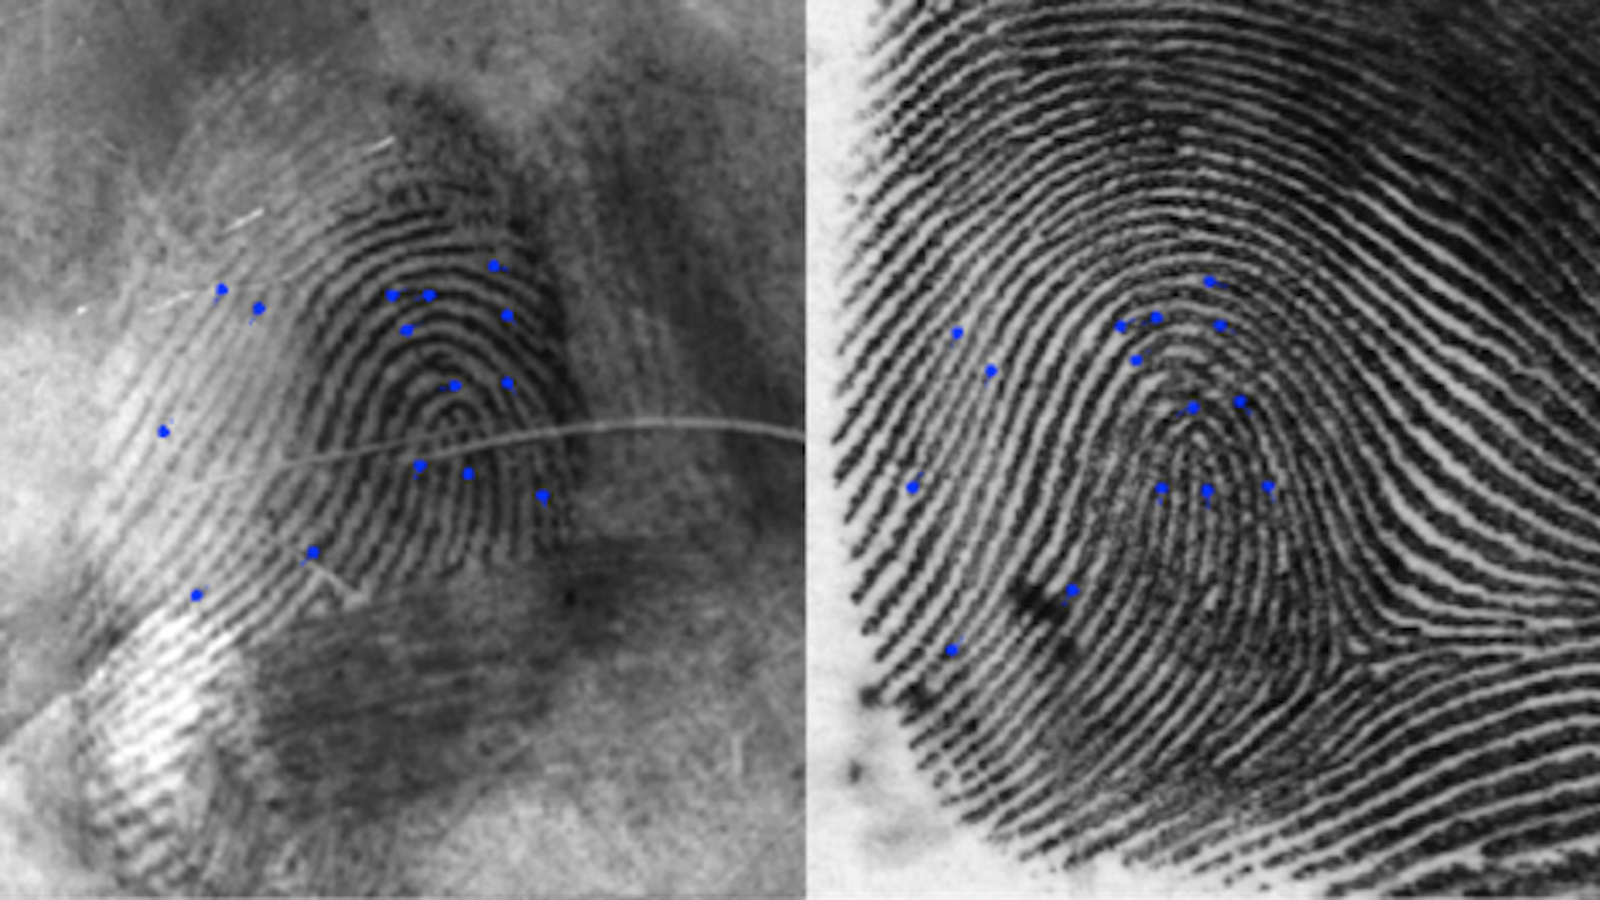 Fingerprint Analysis Could Finally Get Scientific, Thanks to a New Tool